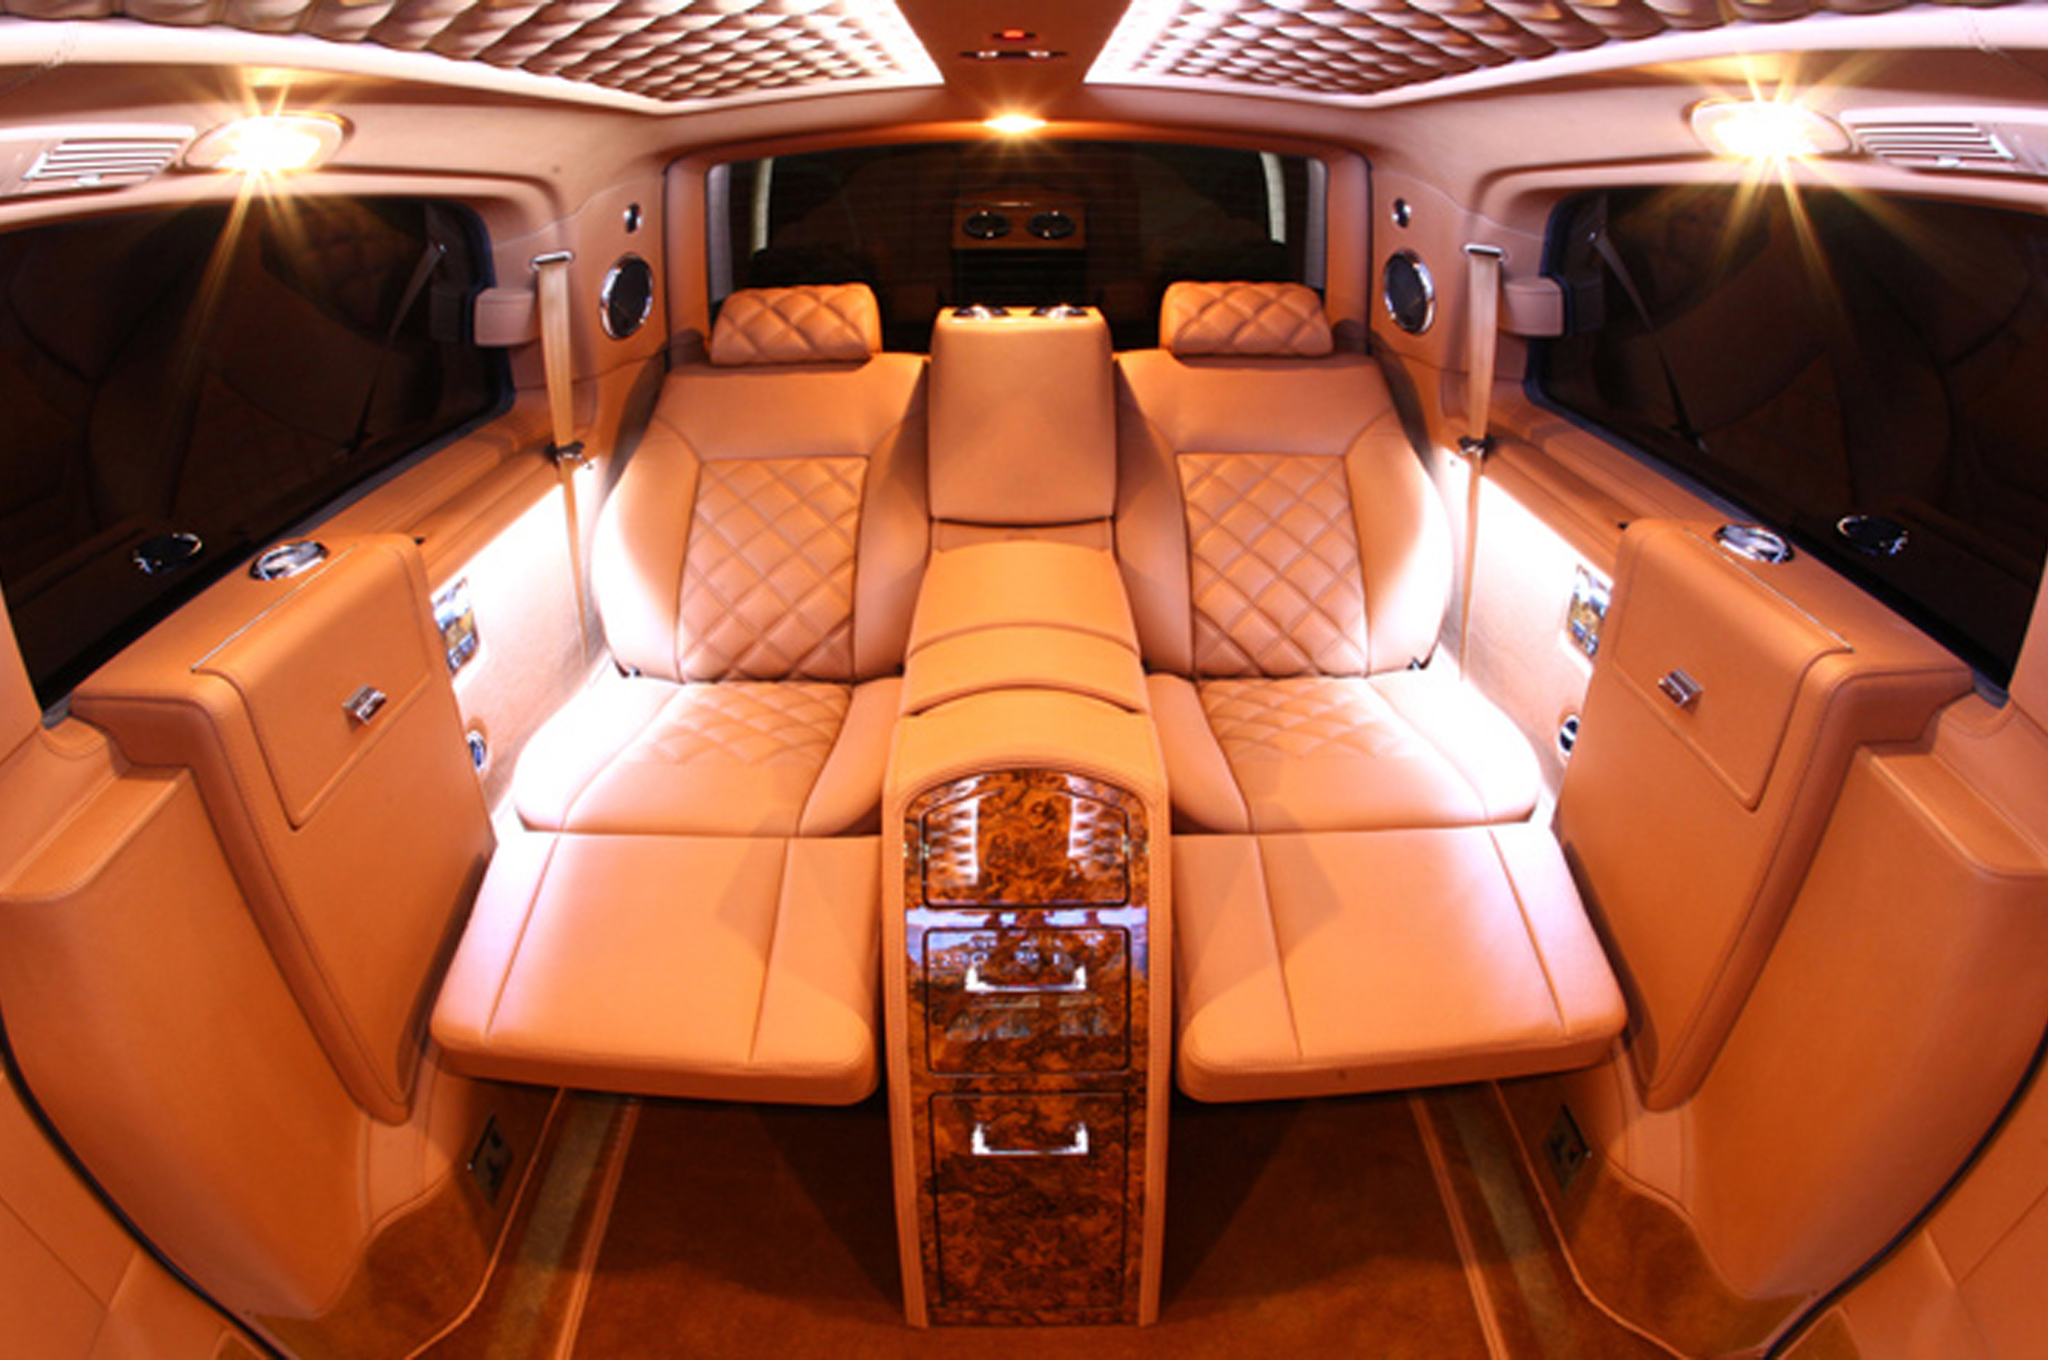 Mercedes Benz Viano Van Conversion Is The Lap Of Luxury